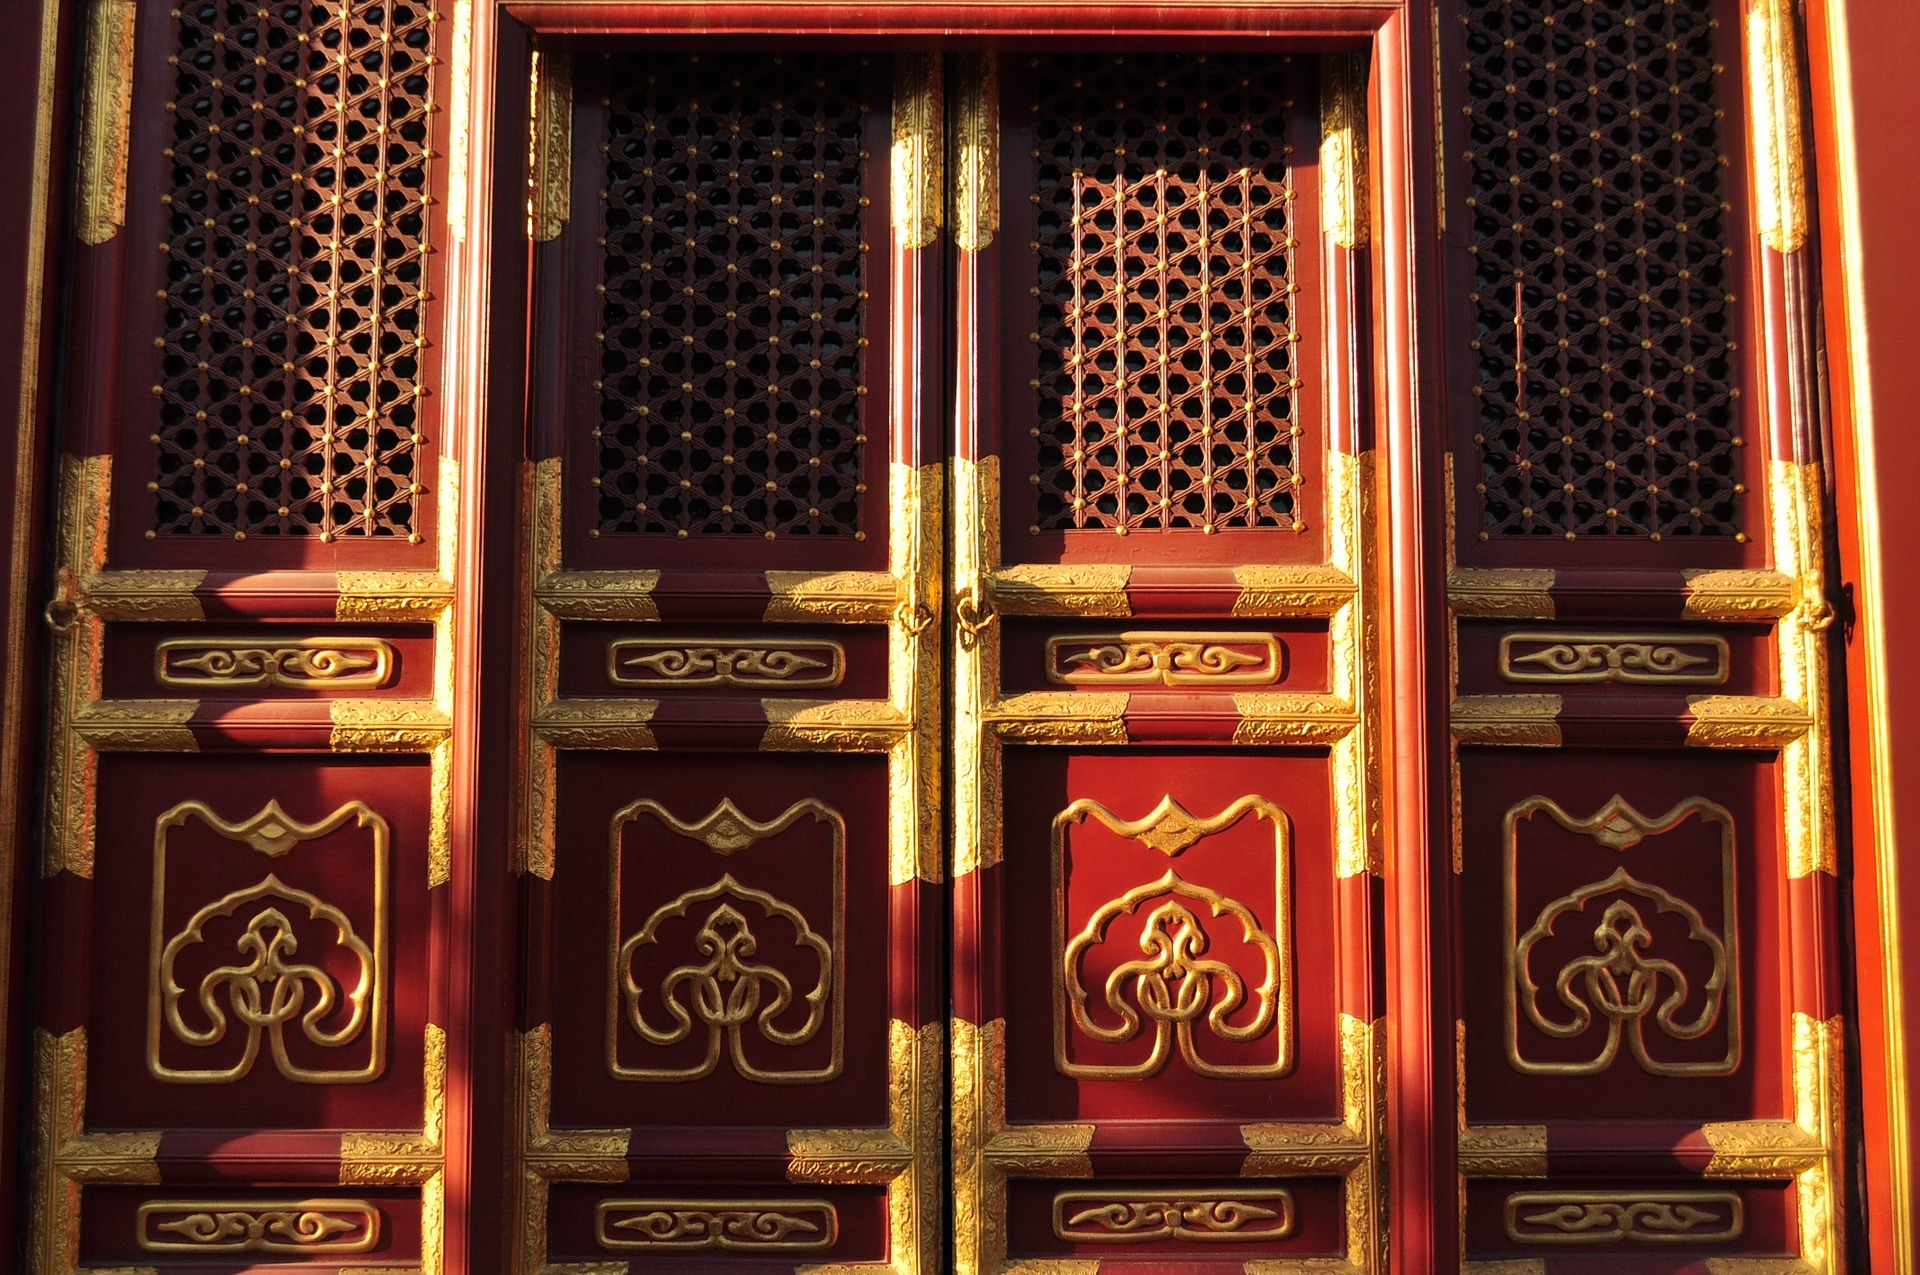 Chinese crypto exchange Huobi looks to the world as China shuts the door on crypto